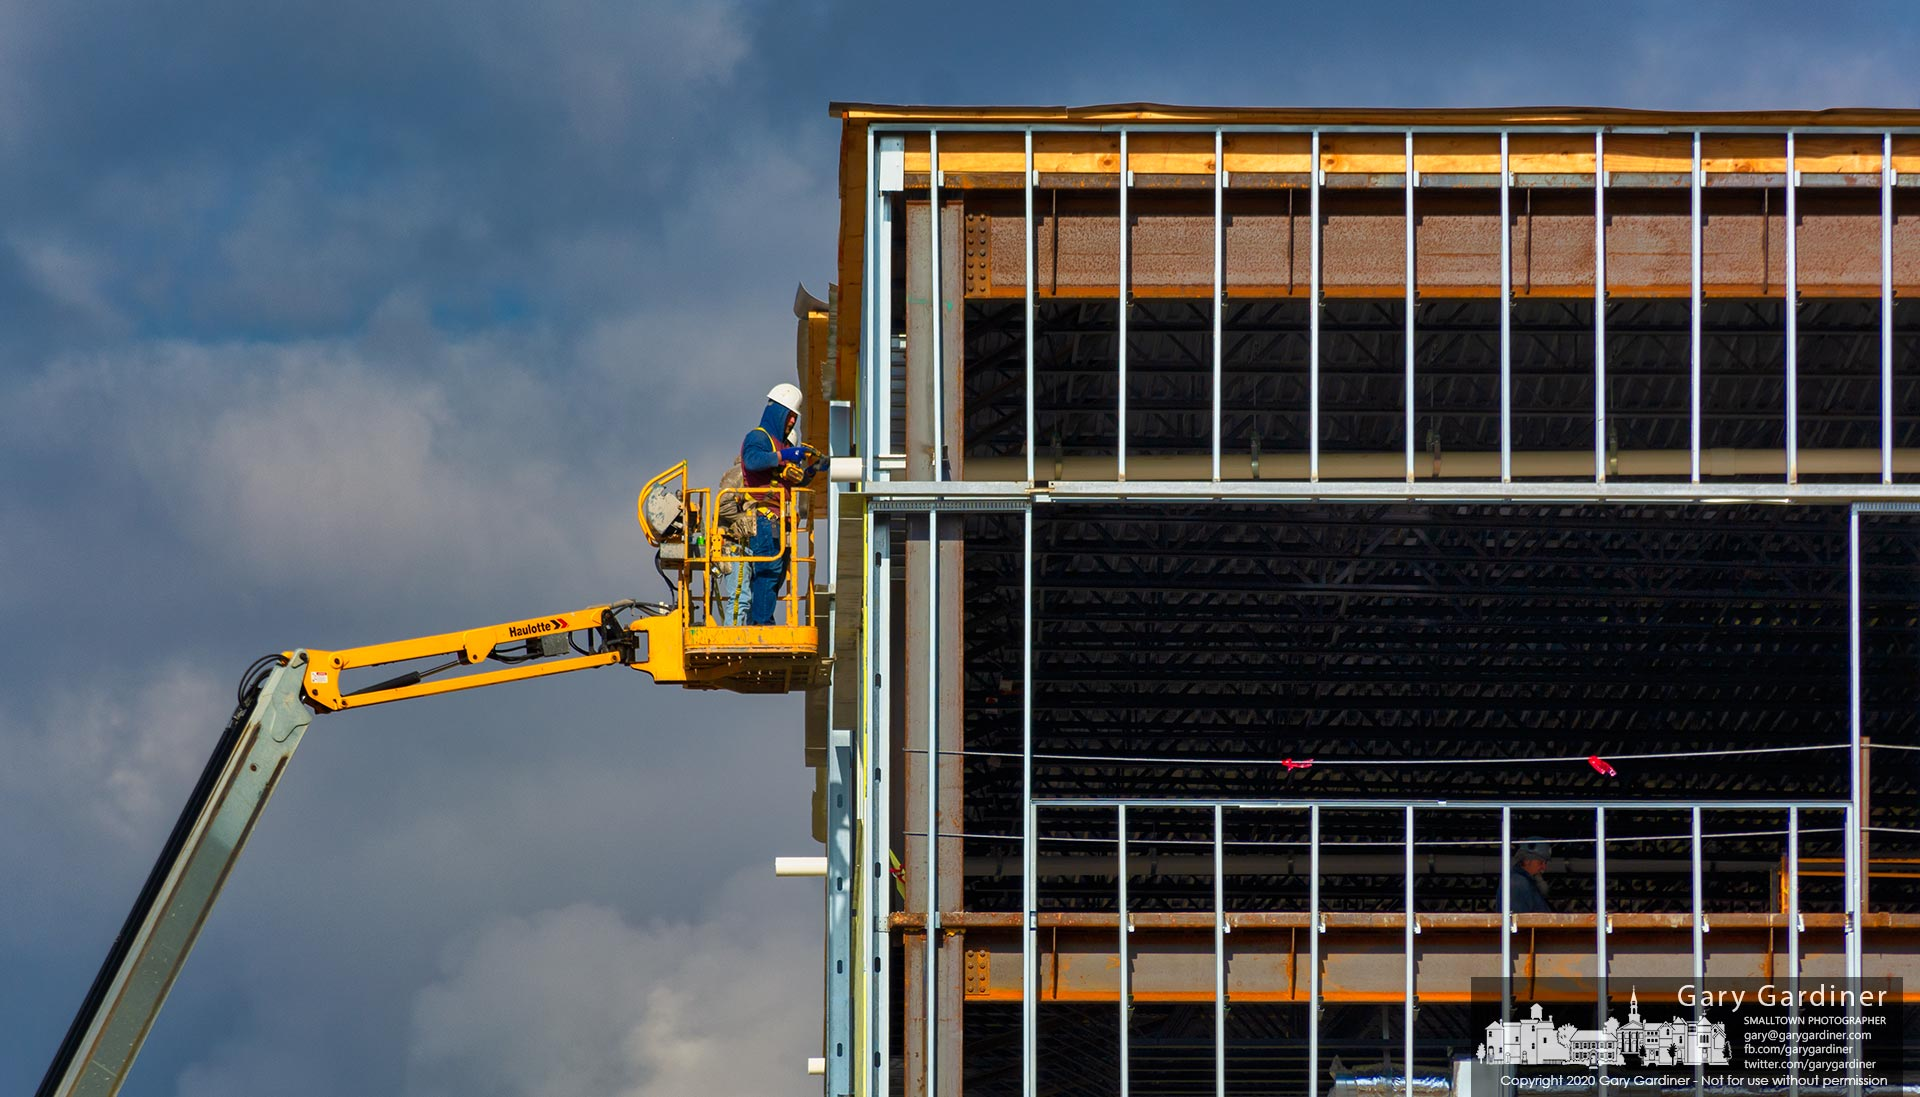 A construction worker attaches a section of waterproof sheathing to the west wall of the COPC medical building being built at the company's headquarters on Africa Road. My Final Photo for Nov. 23, 2020.